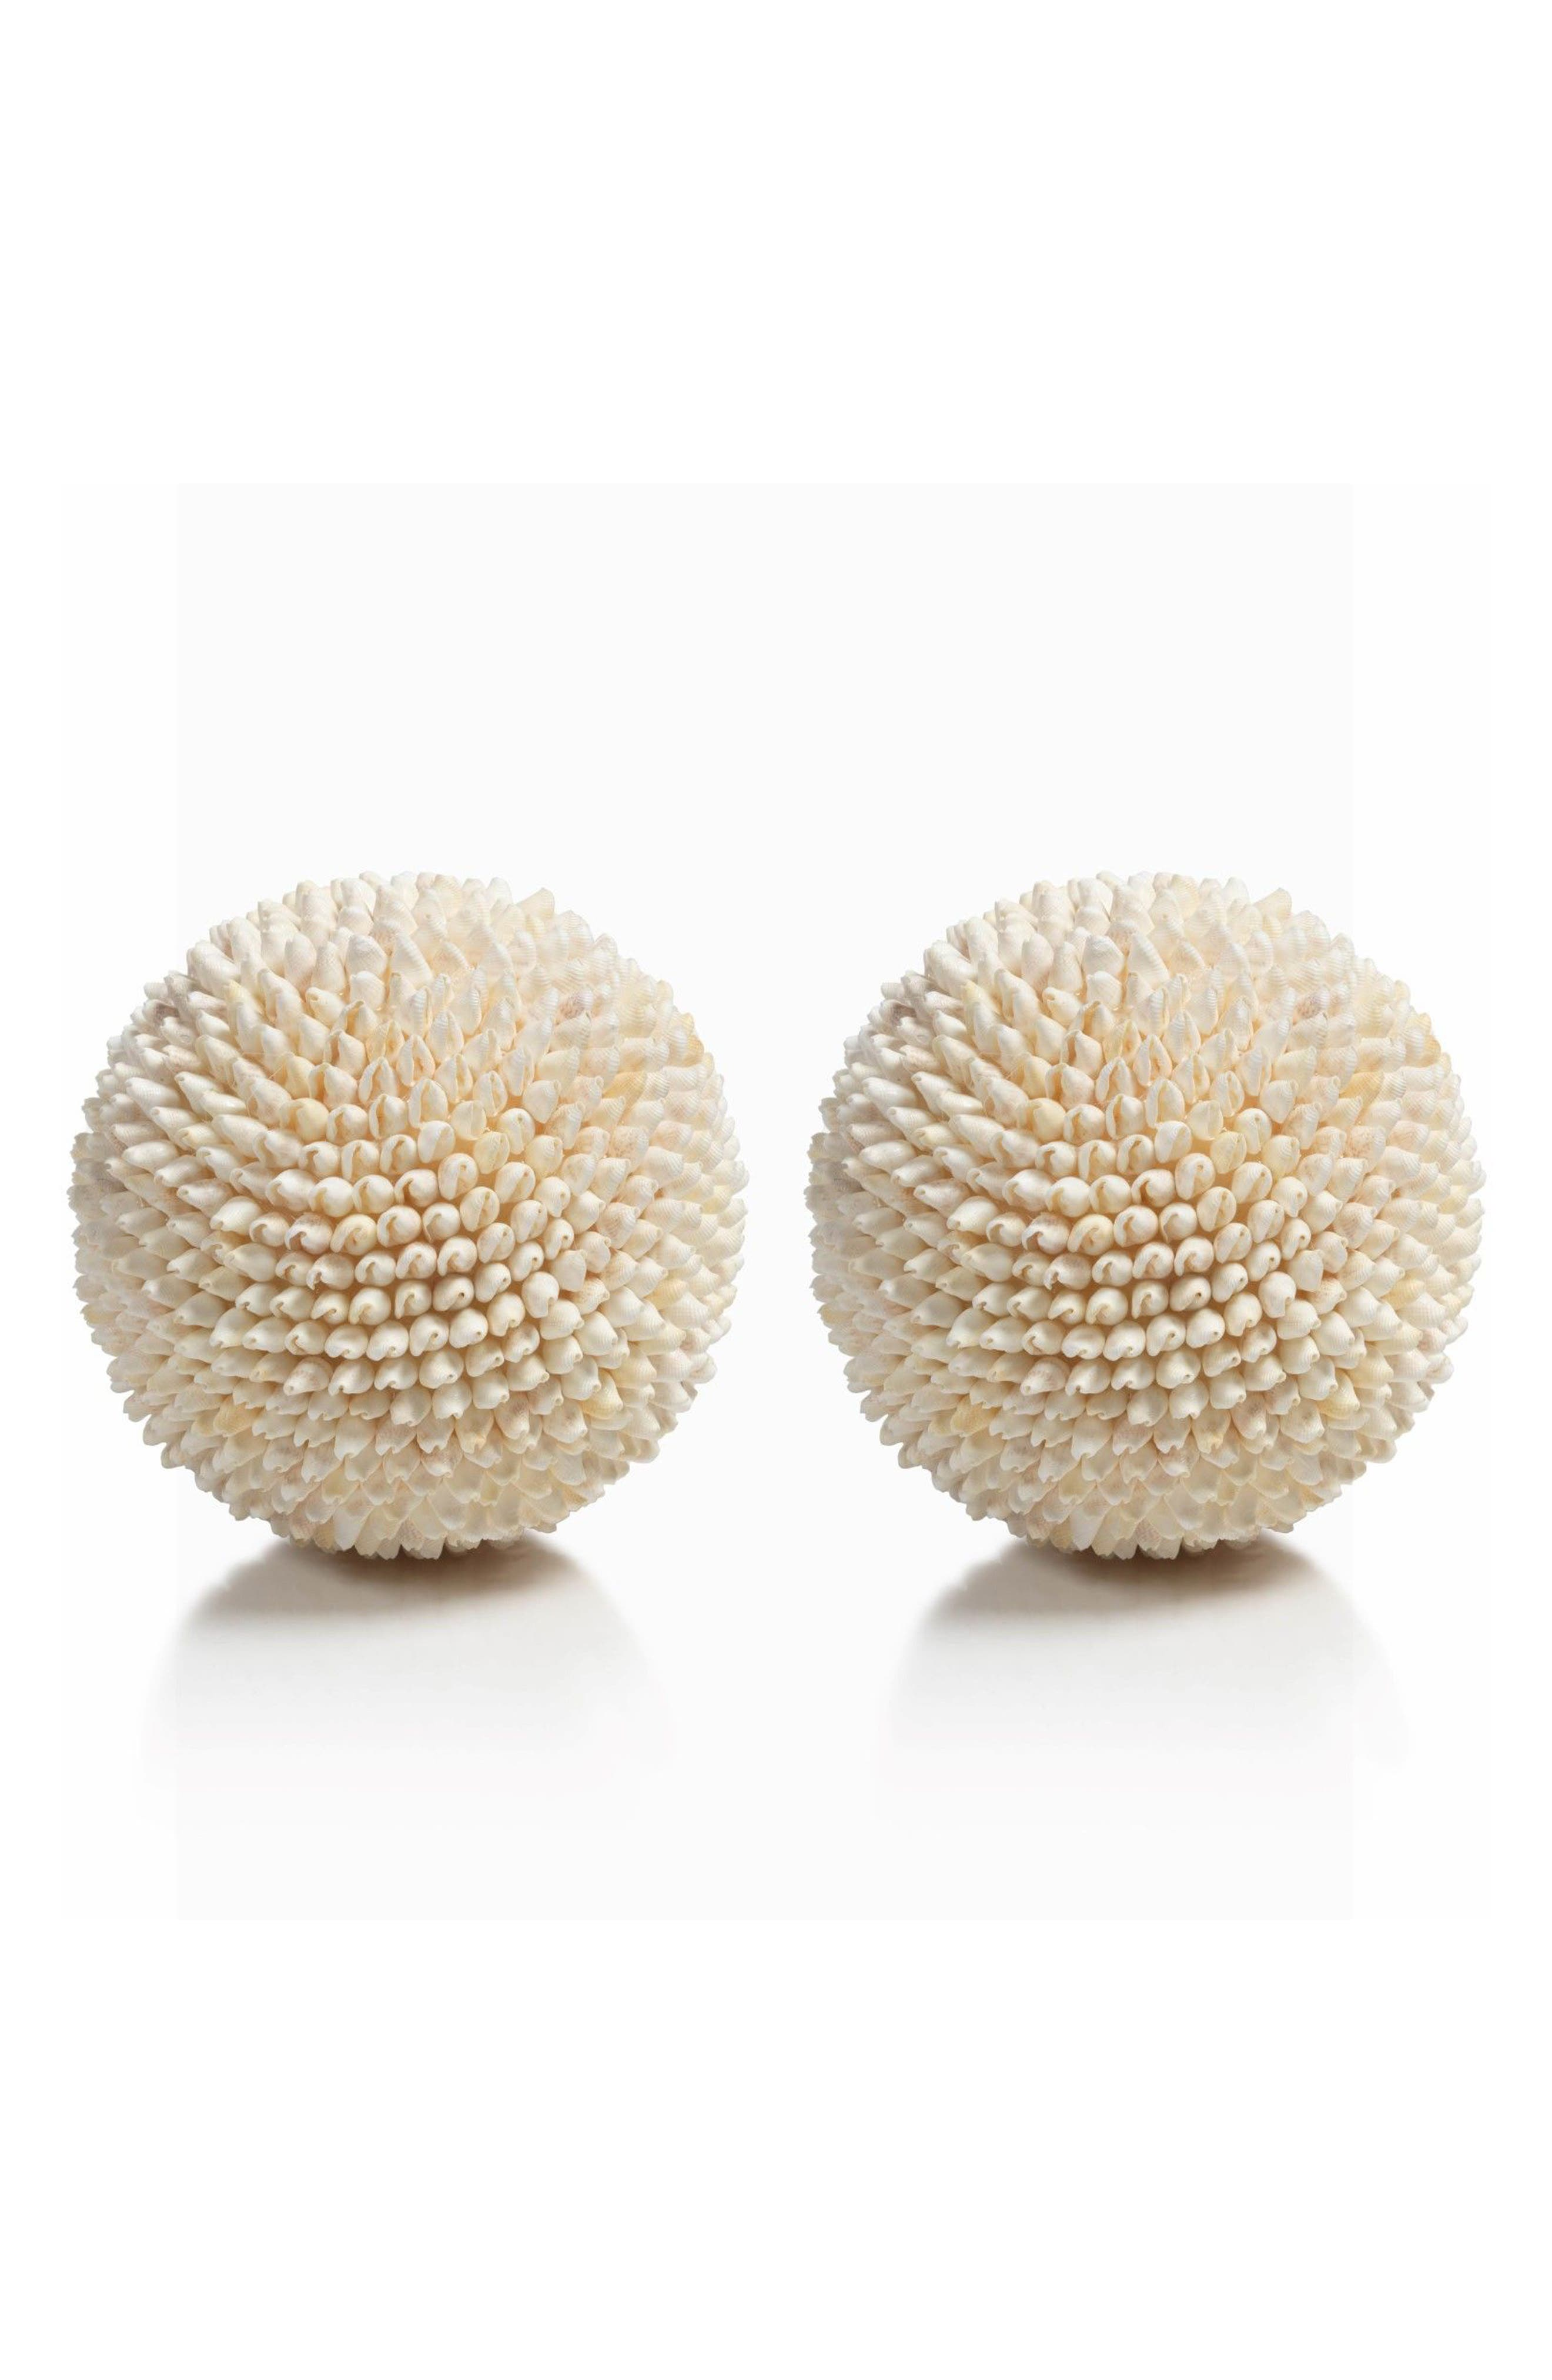 Alternate Image 1 Selected - Zodax Palay Set of 2 Shell Decorations